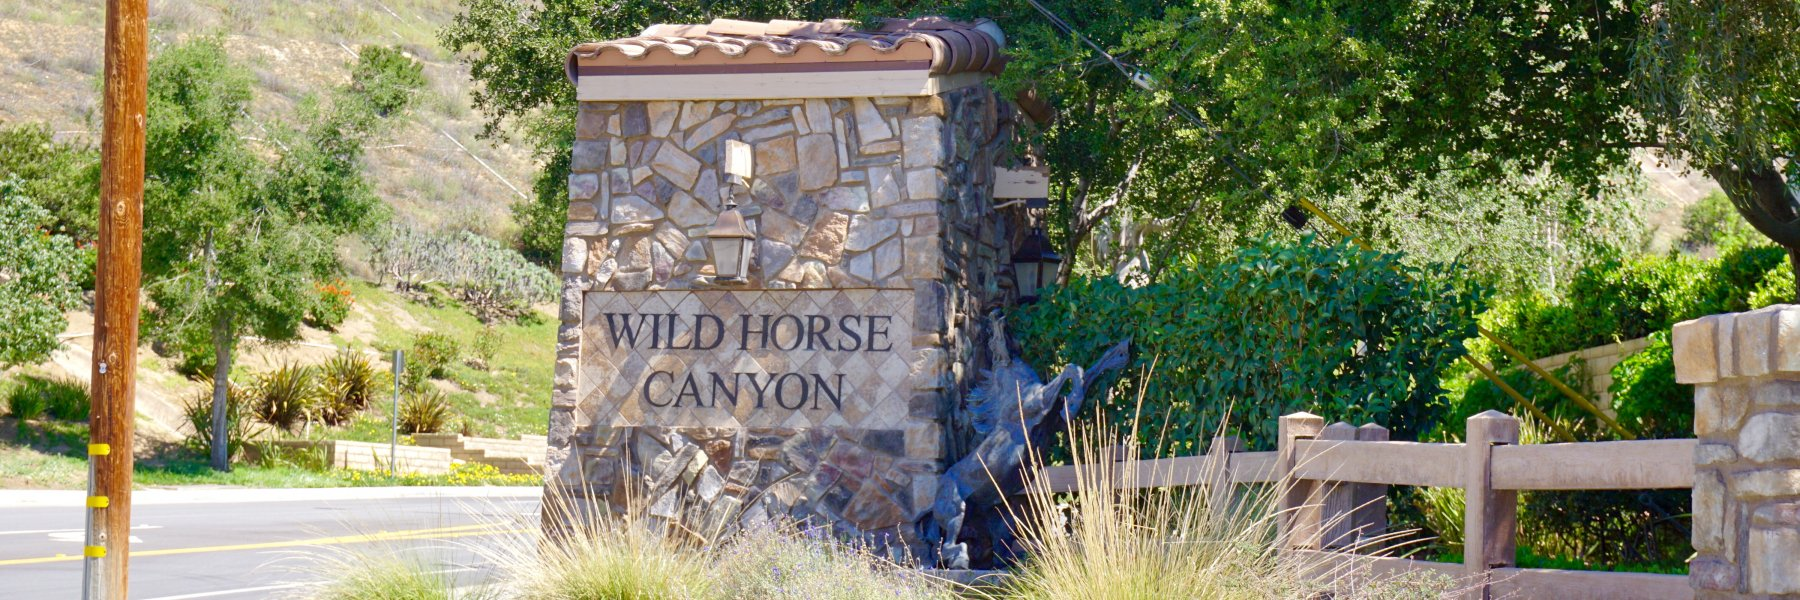 Wild Horse Canyon is a community of homes in Simi Valley California